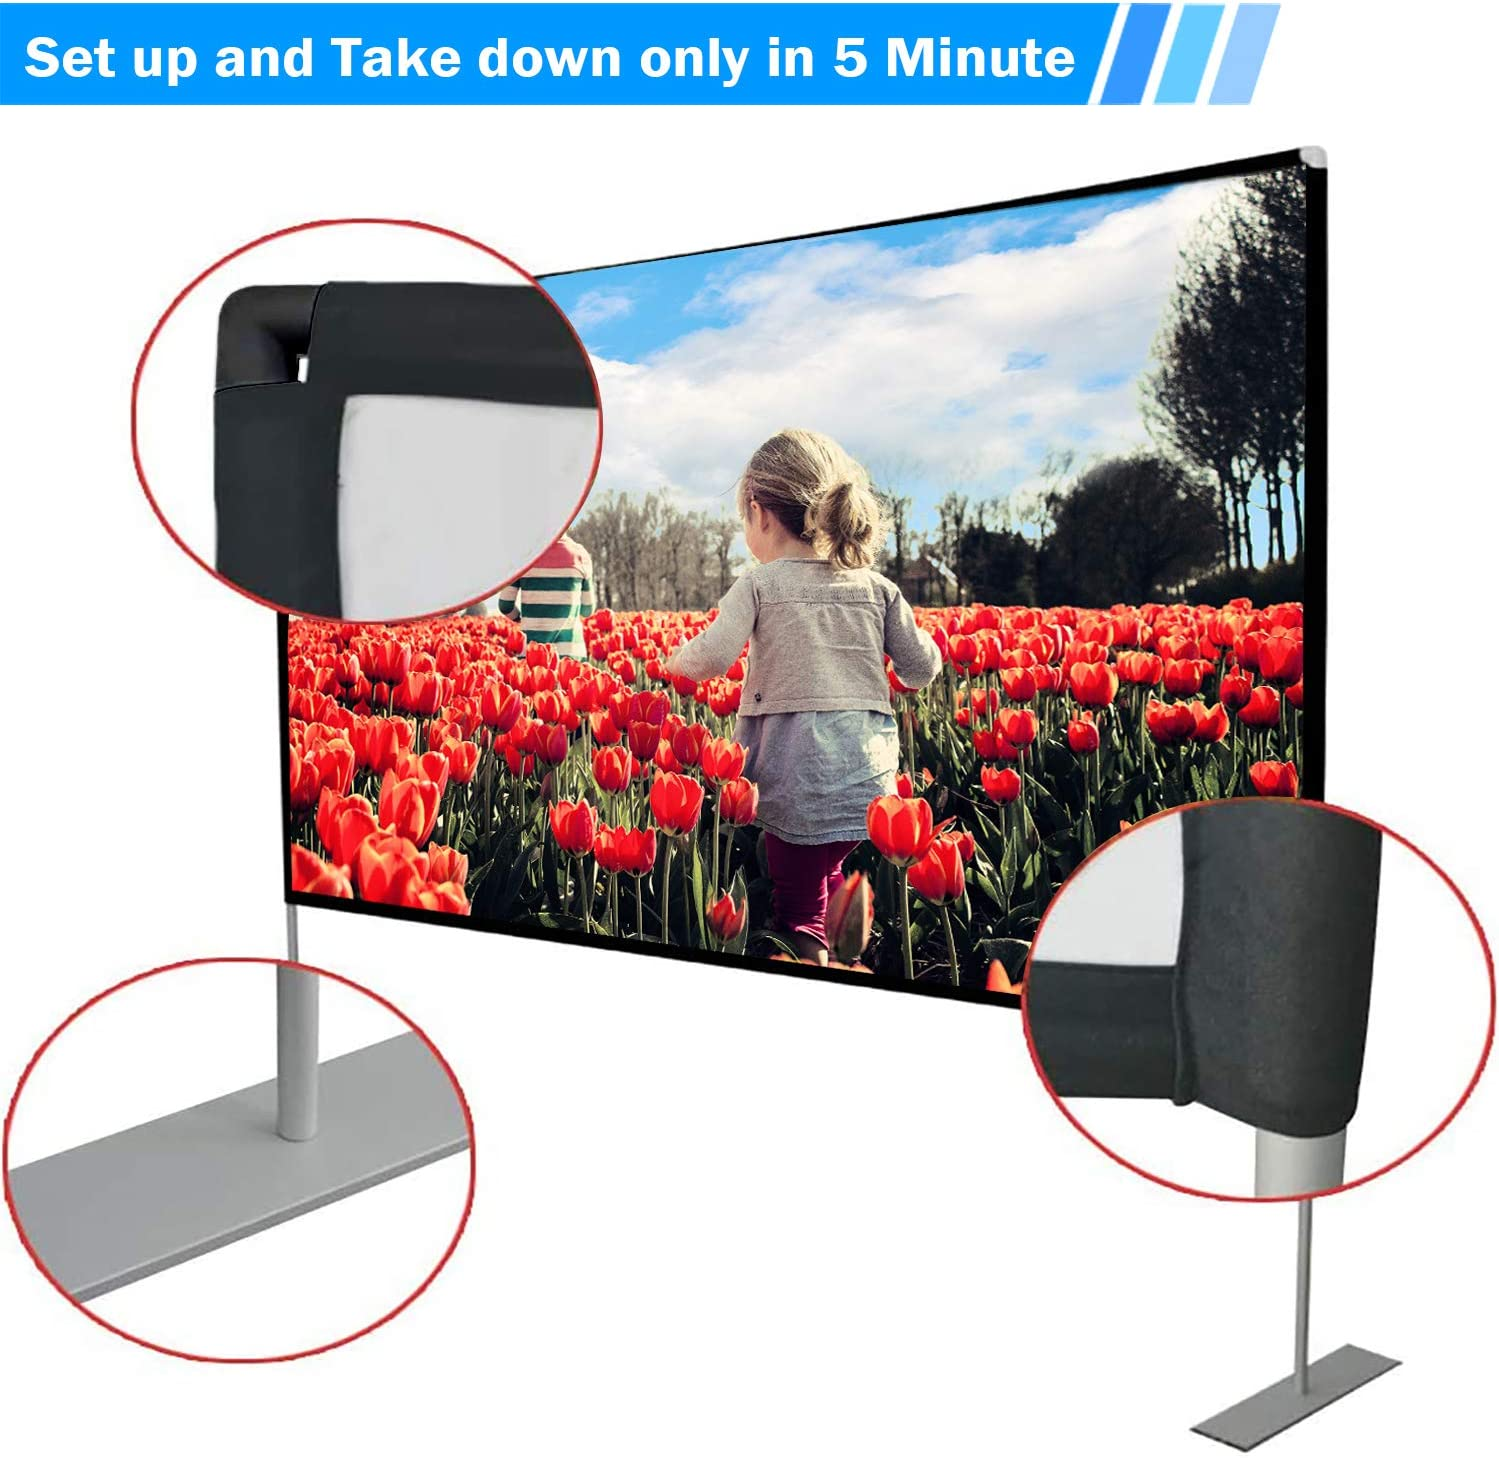 JinHuiCheng Projector Screen with Stand Portable Projection Screen 16:9 for Indoor Outdoor Home Theater Backyard Cinema Trave (100inch): Home Audio & Theater